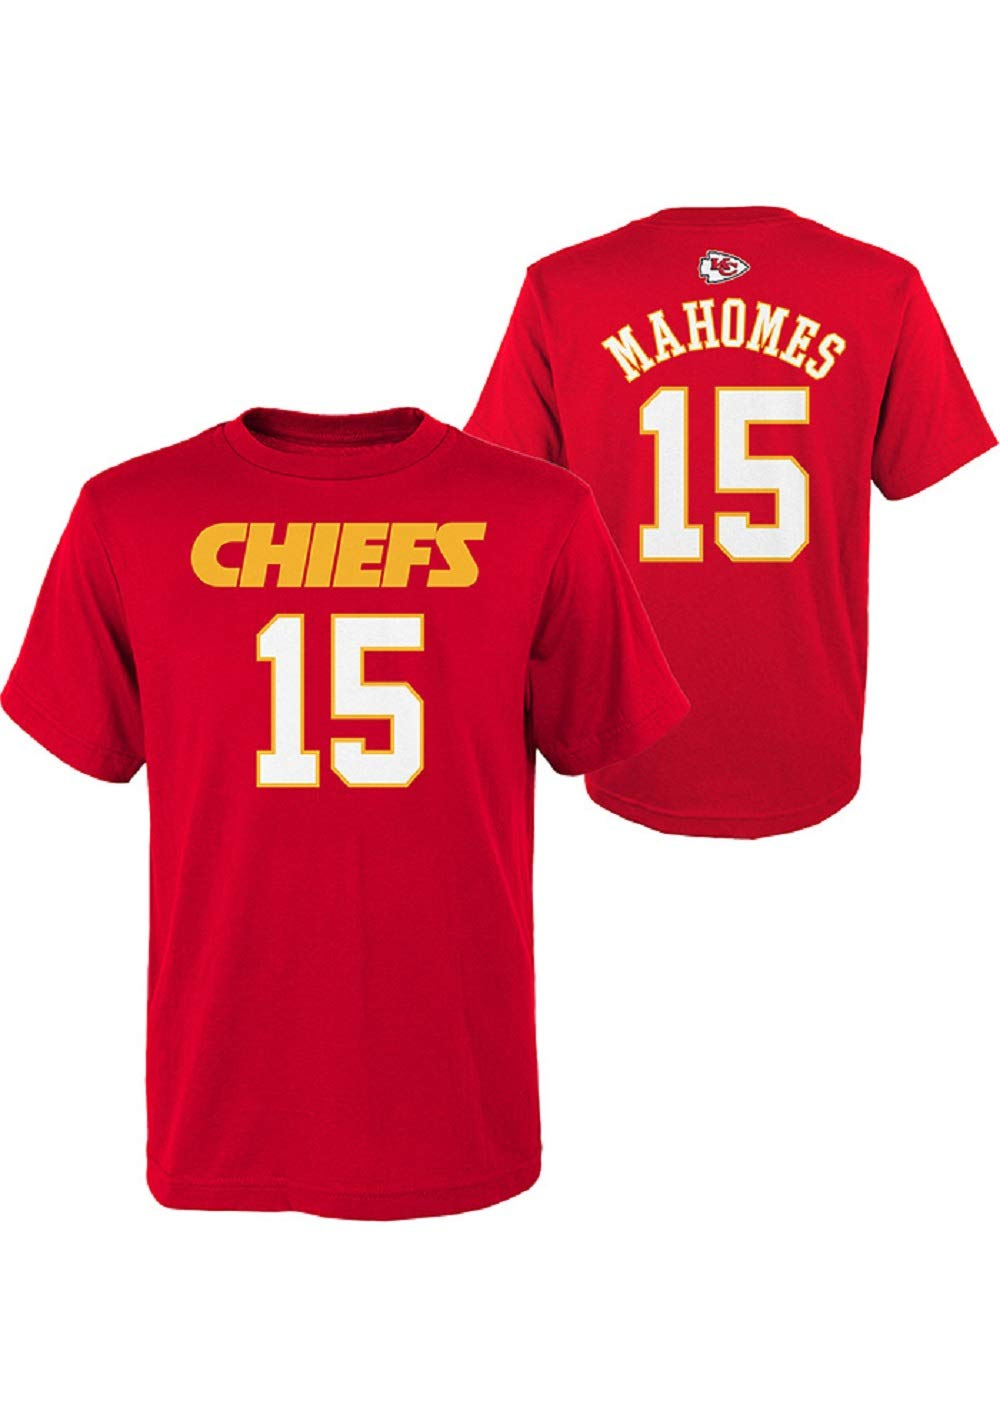 d04e89c15b5 Outerstuff Patrick Mahomes Kansas City Chiefs NFL Youth 8-20 Red ...